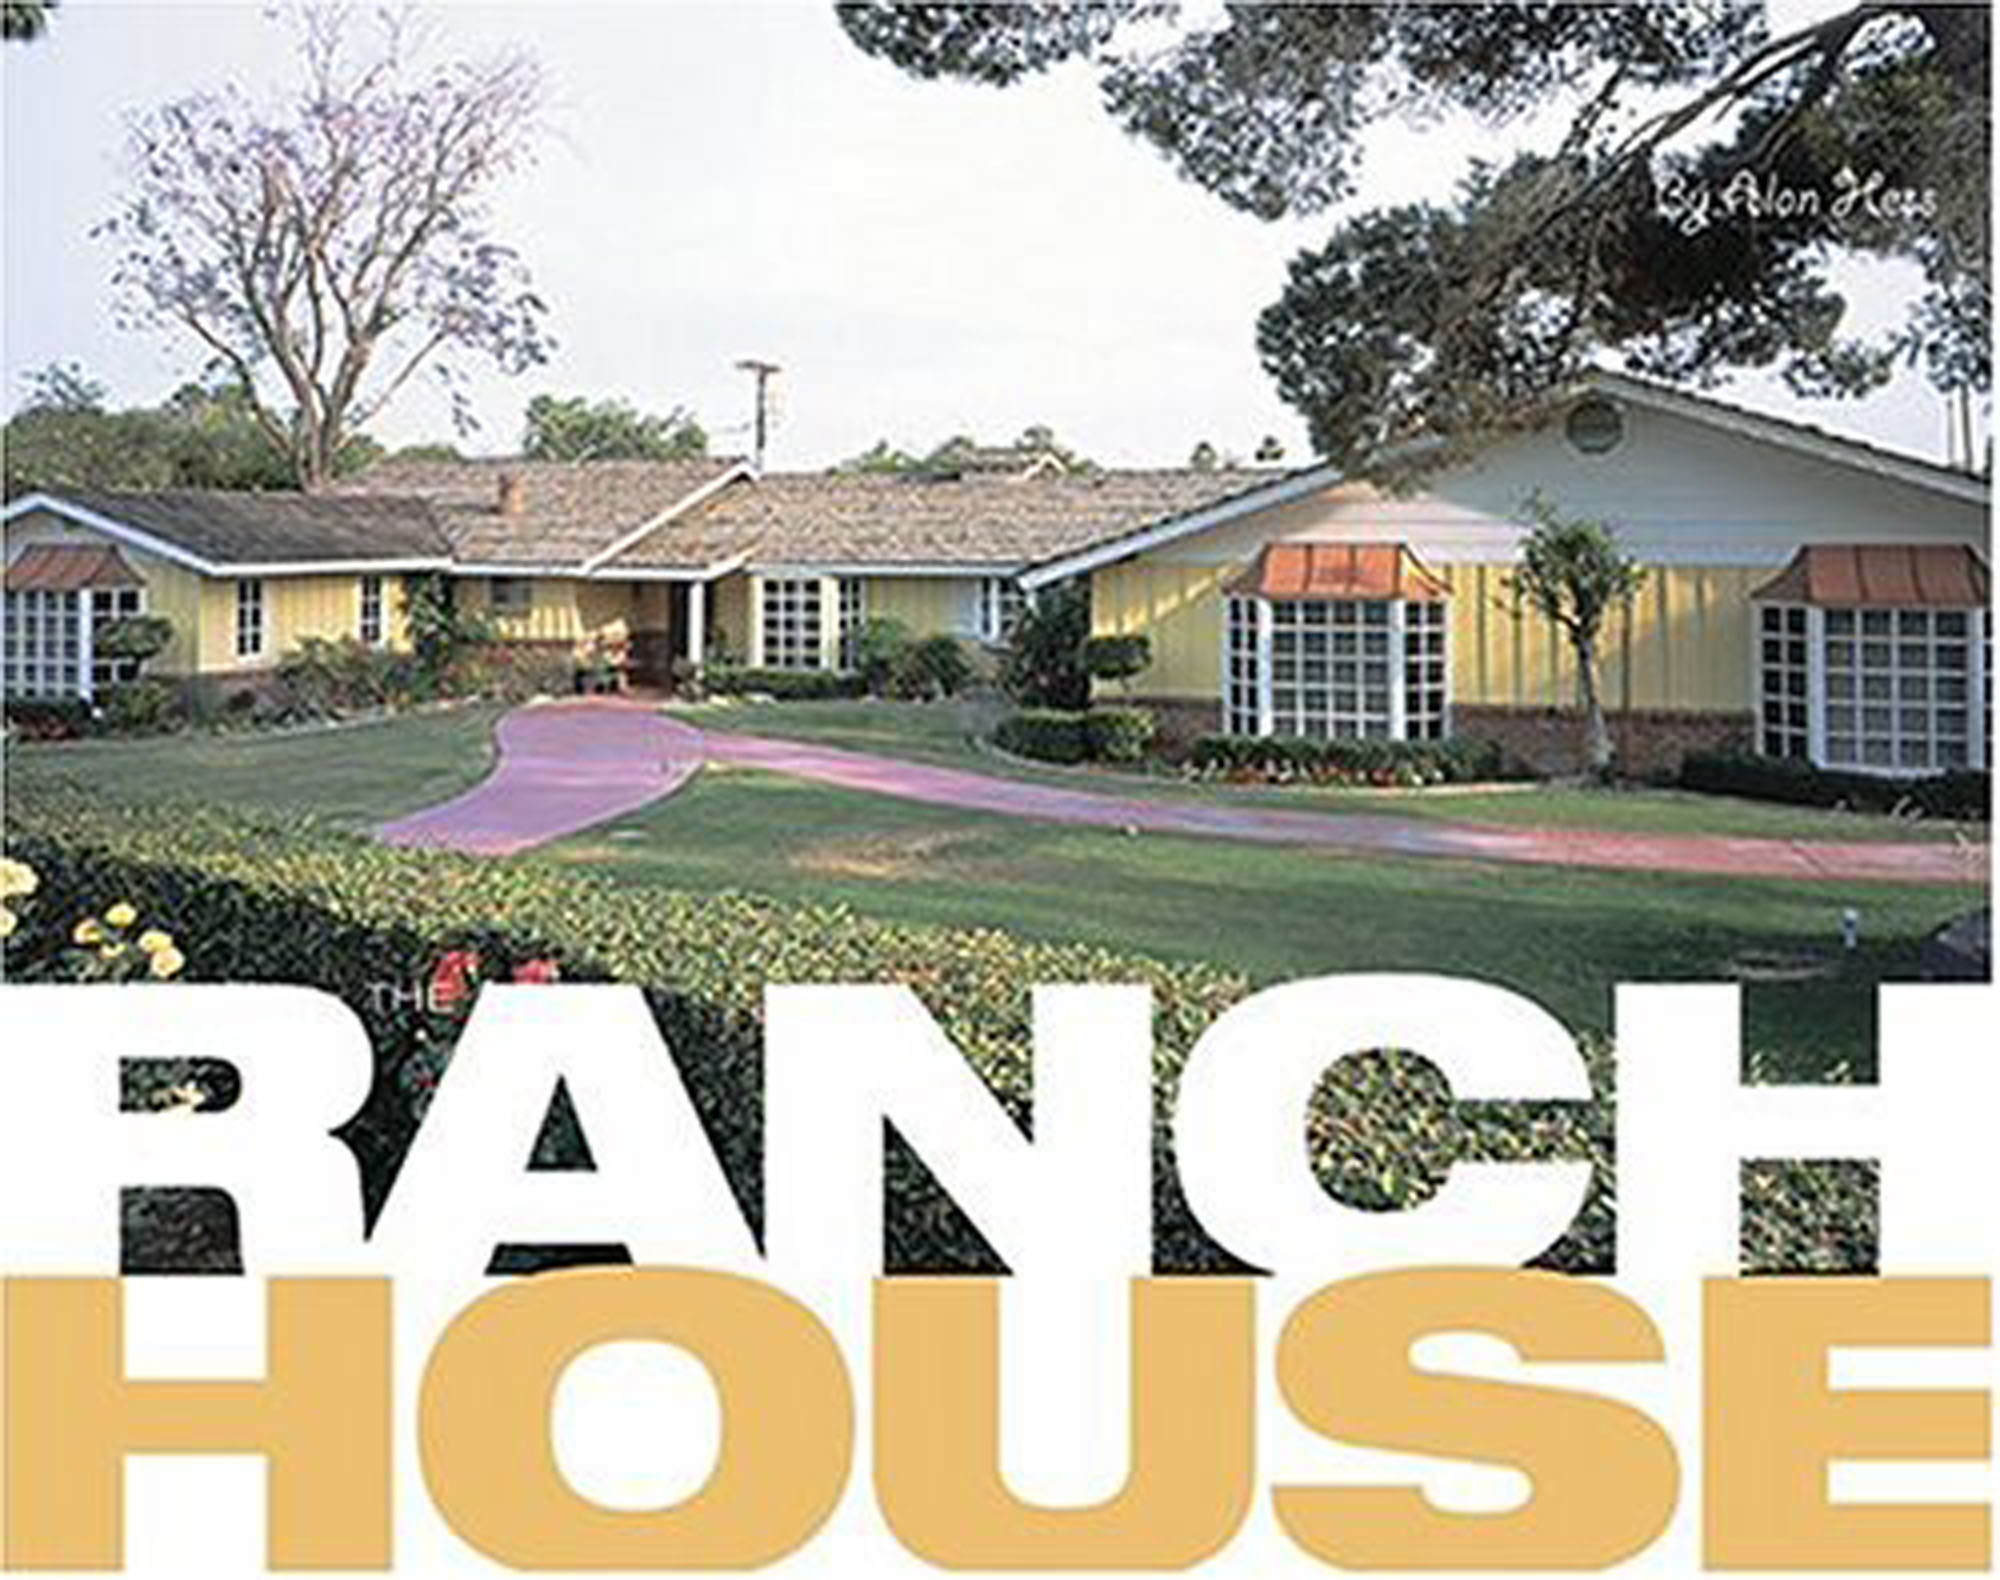 The Ranch House by Alan Hess.